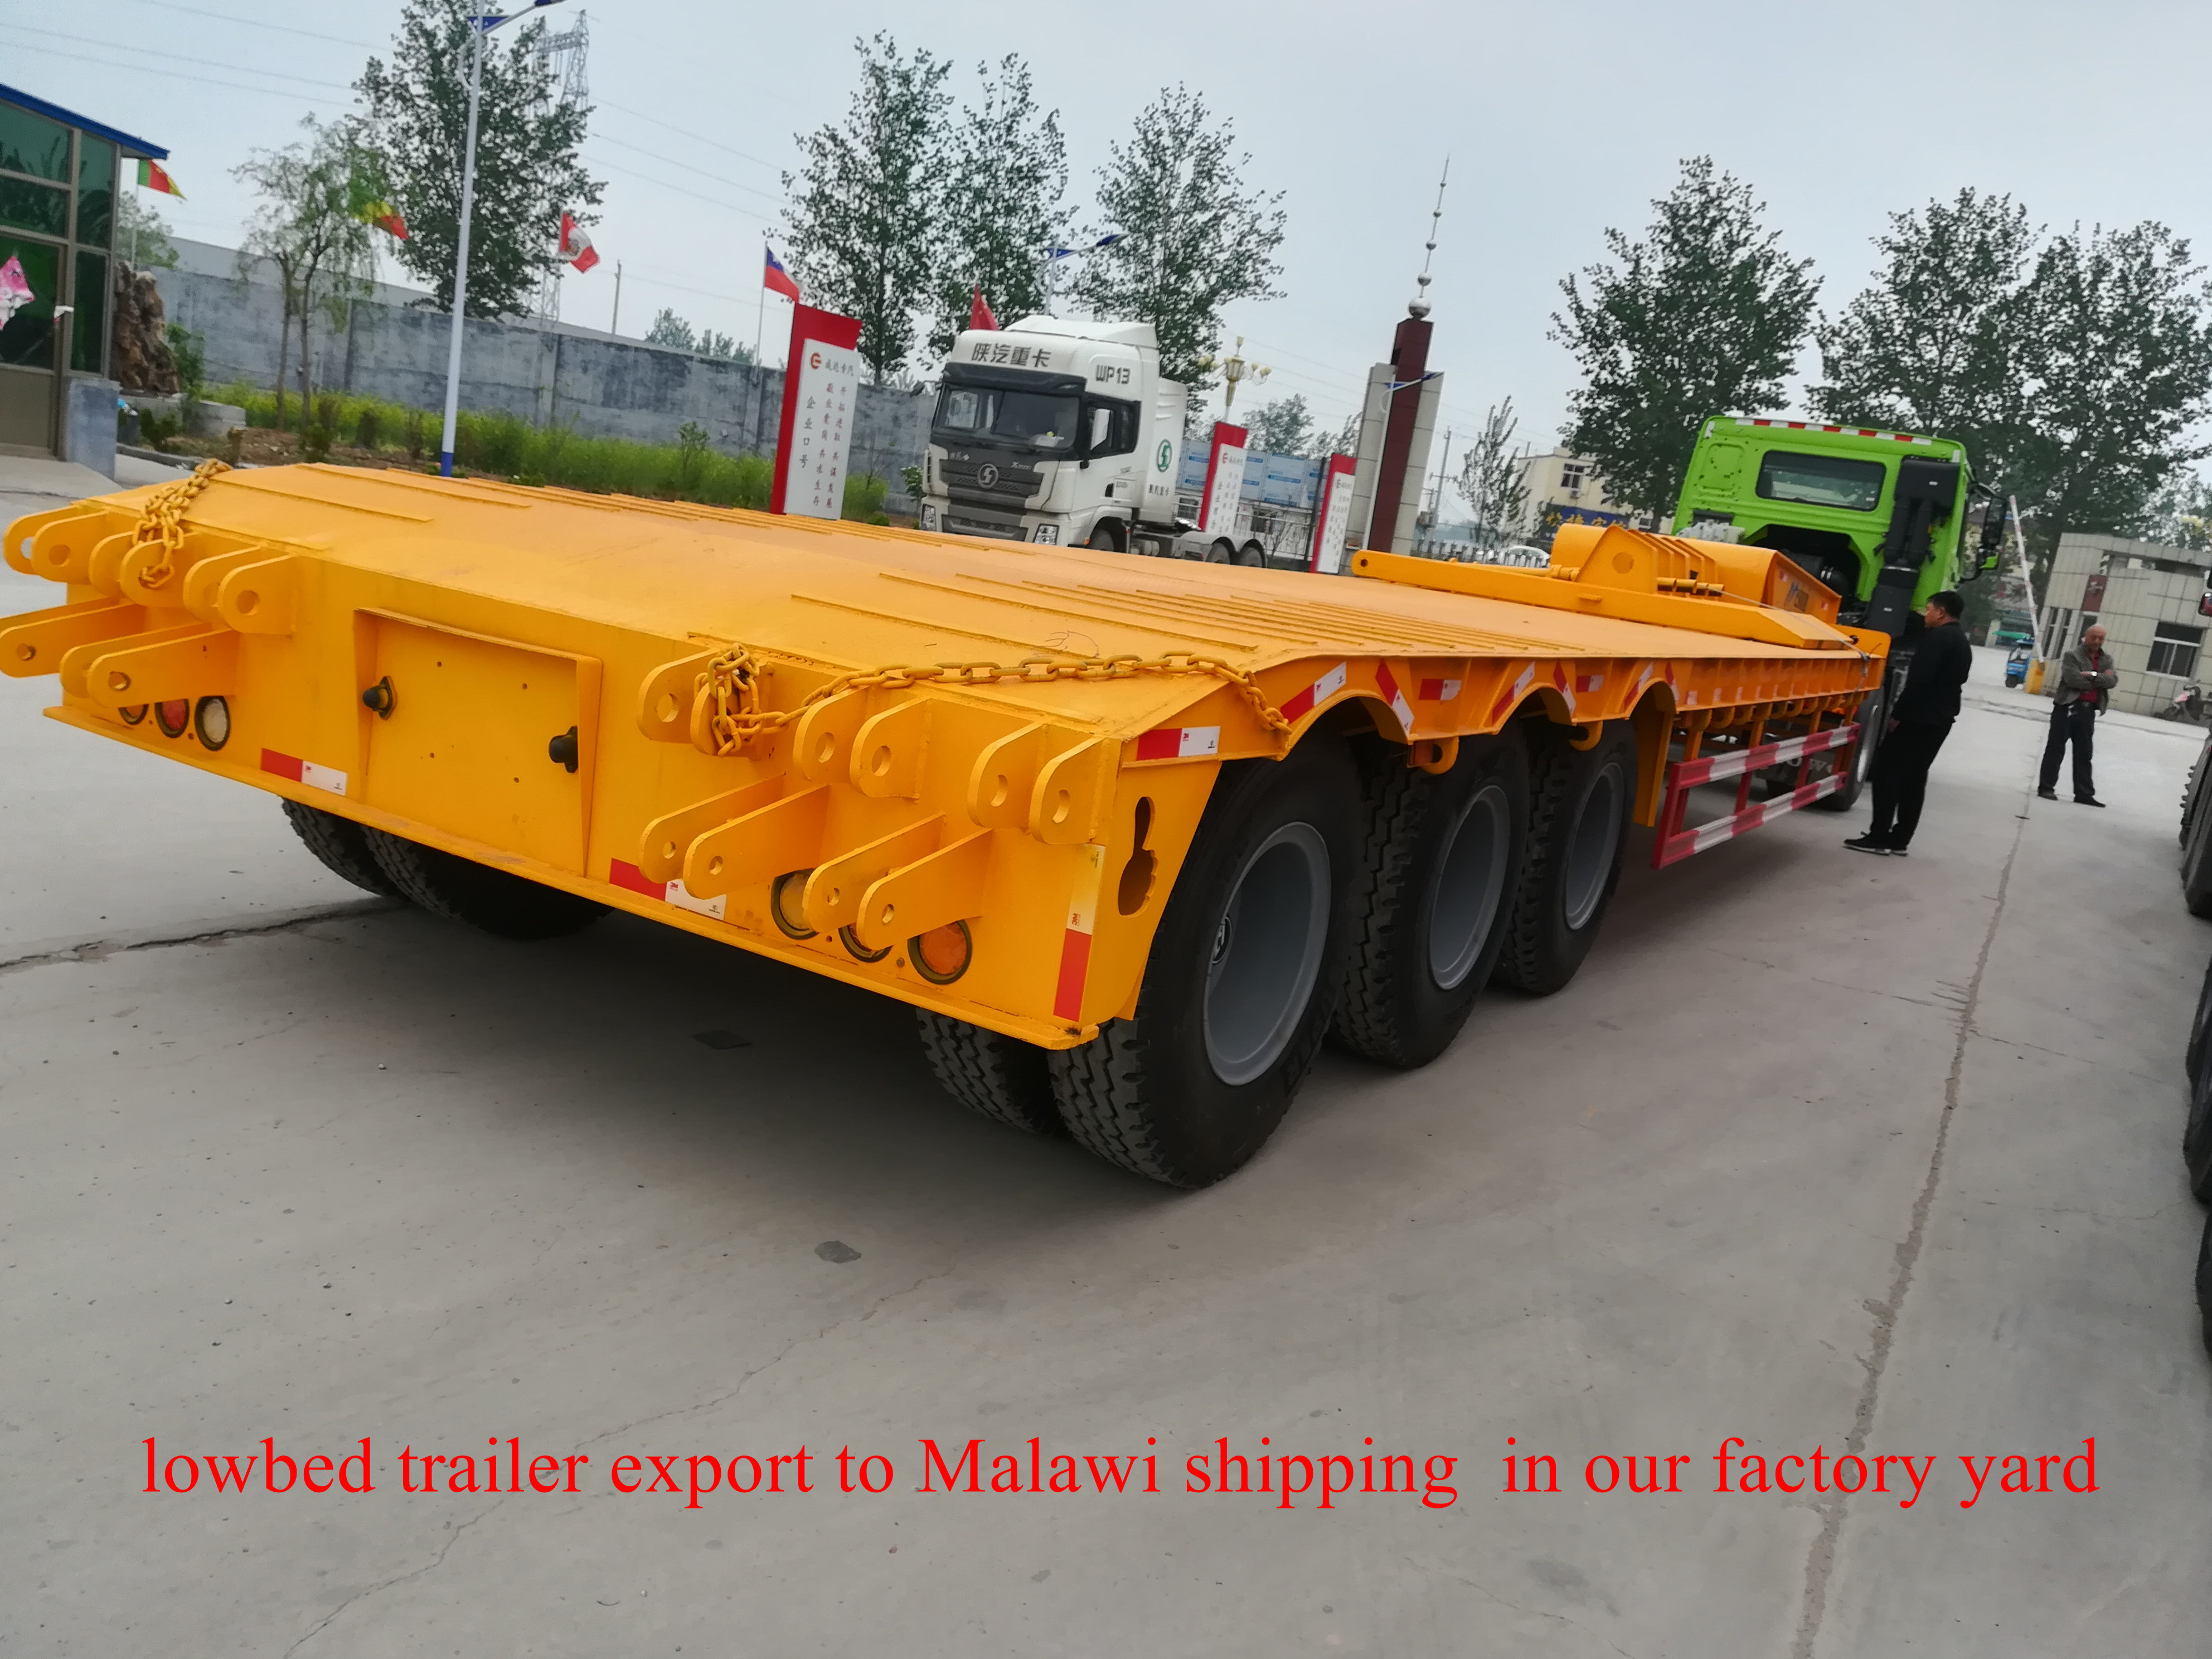 lowbed trailer export to Malawi shipping  in our factory yard on 04232018 (1)_副本.jpg